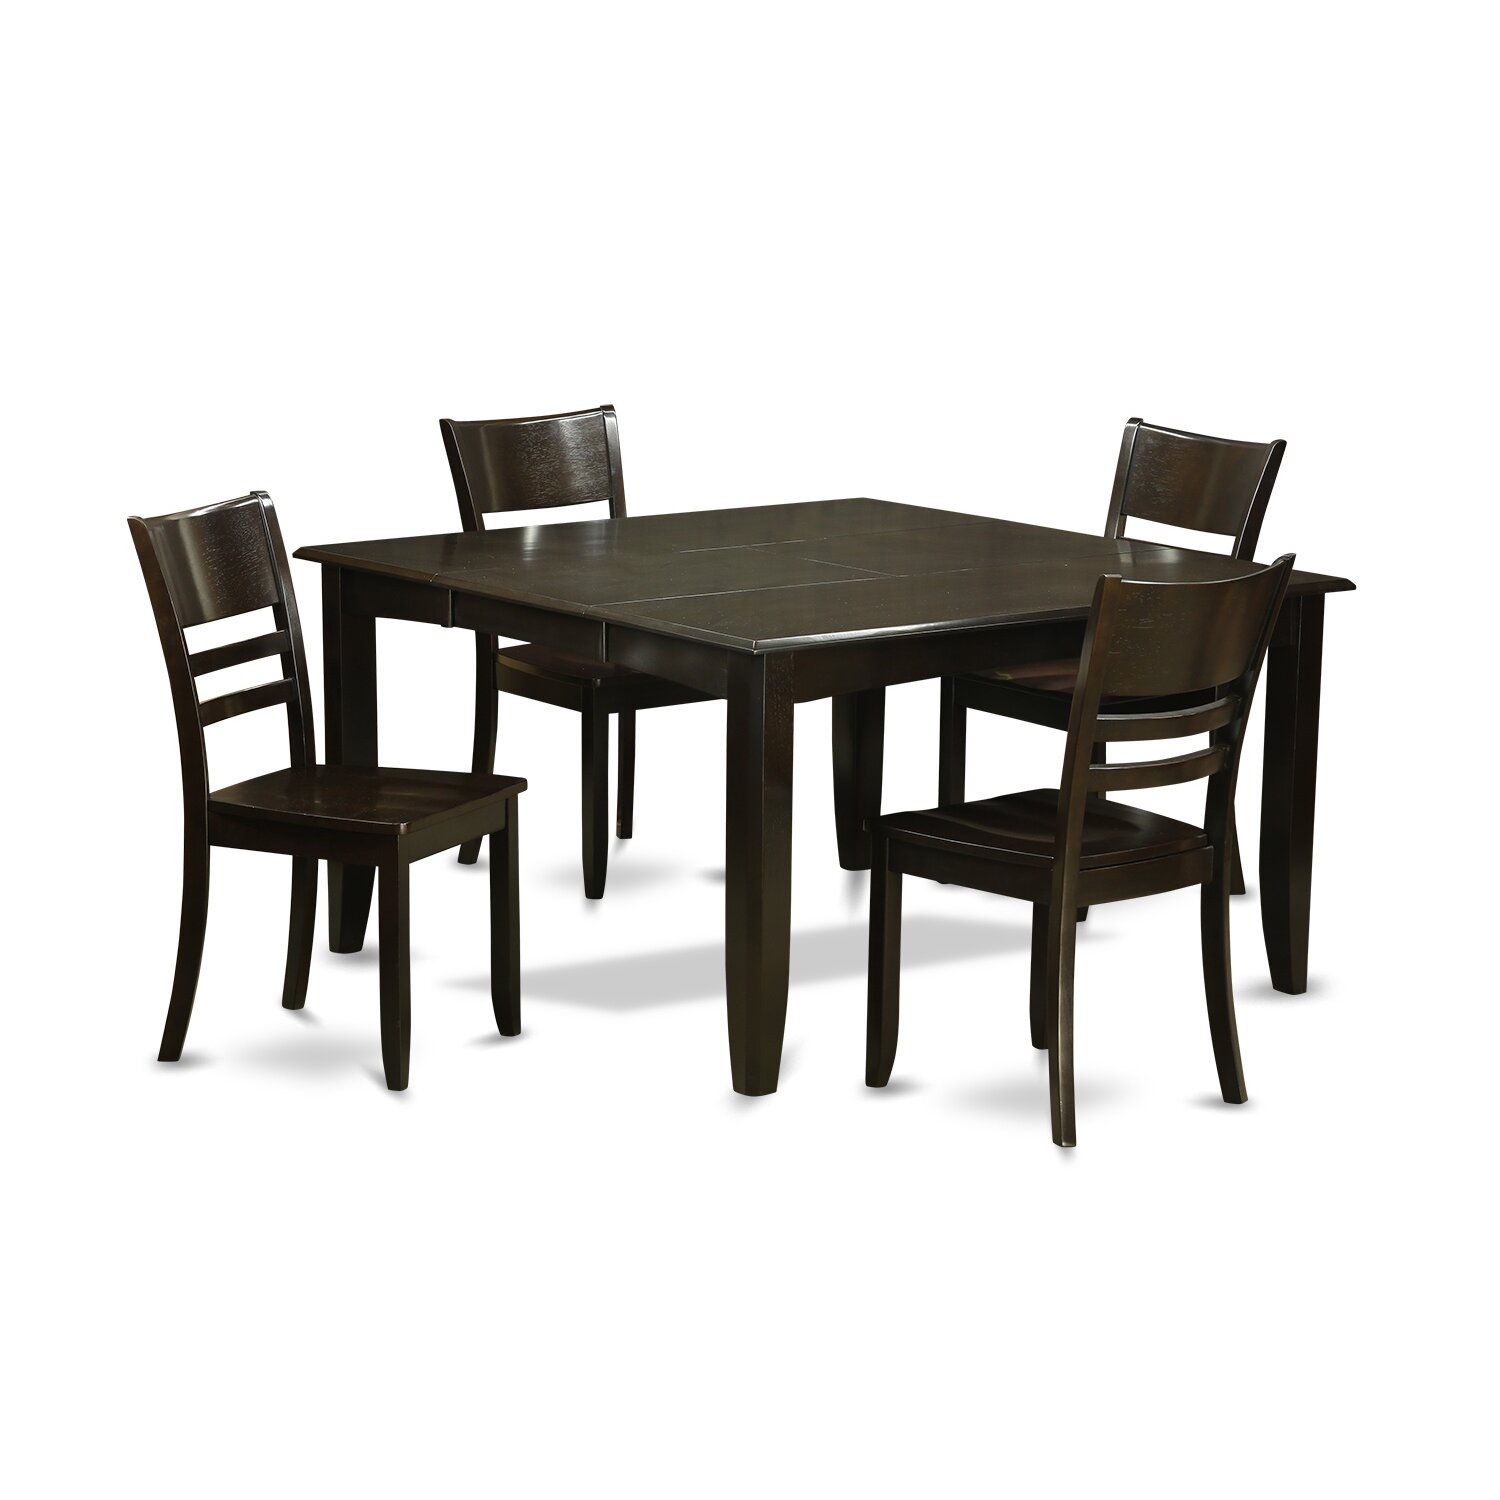 Wooden importers parfait 5 piece dining set wayfair for Kitchen dinette sets